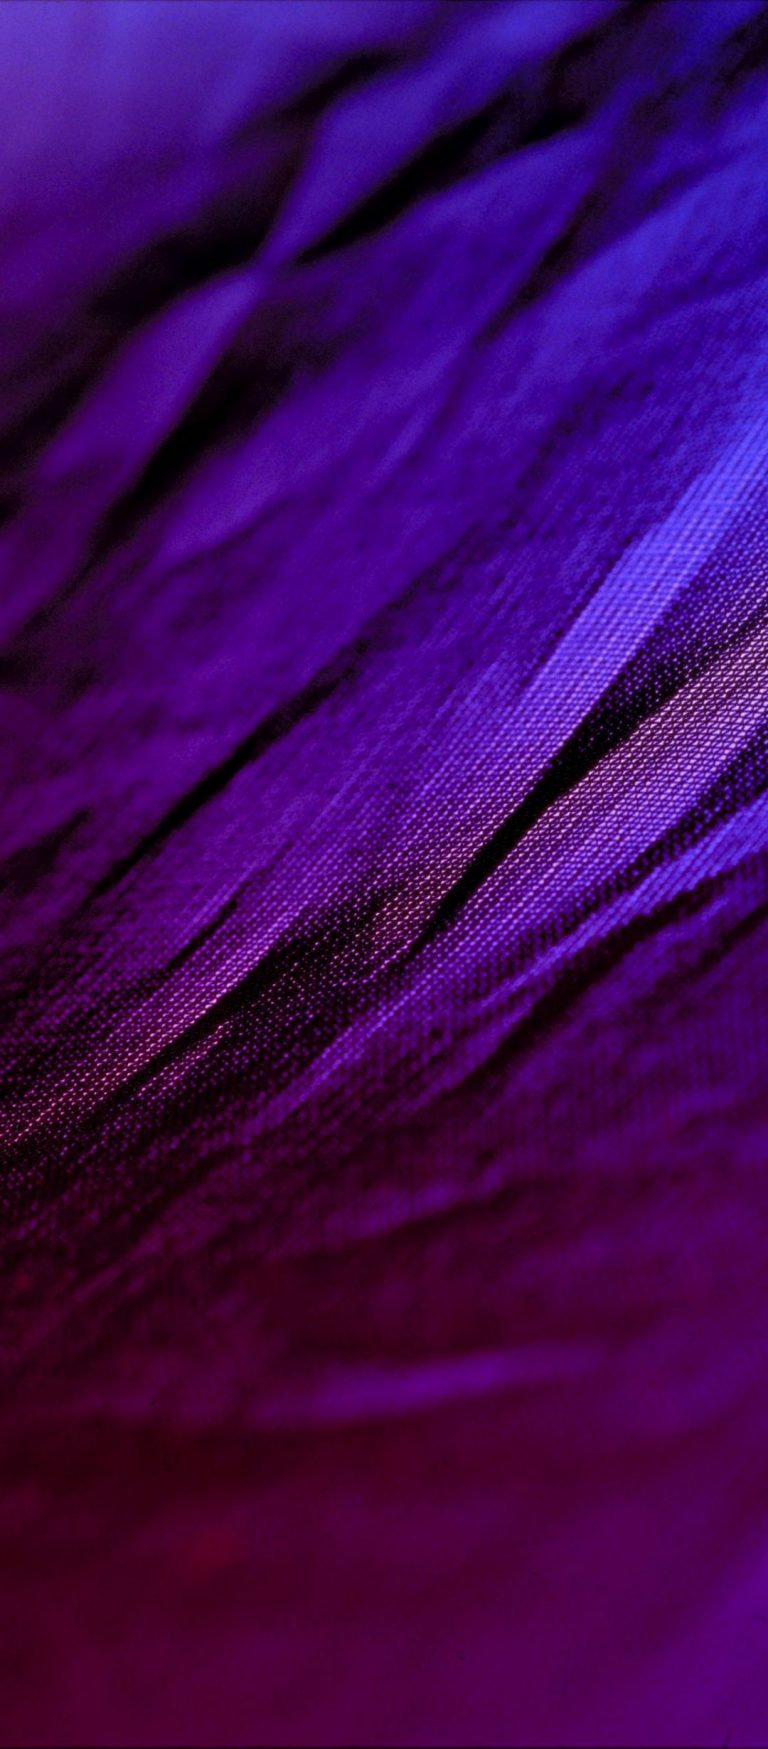 Fabric Shadow Line Black Background 1080x2460 768x1749